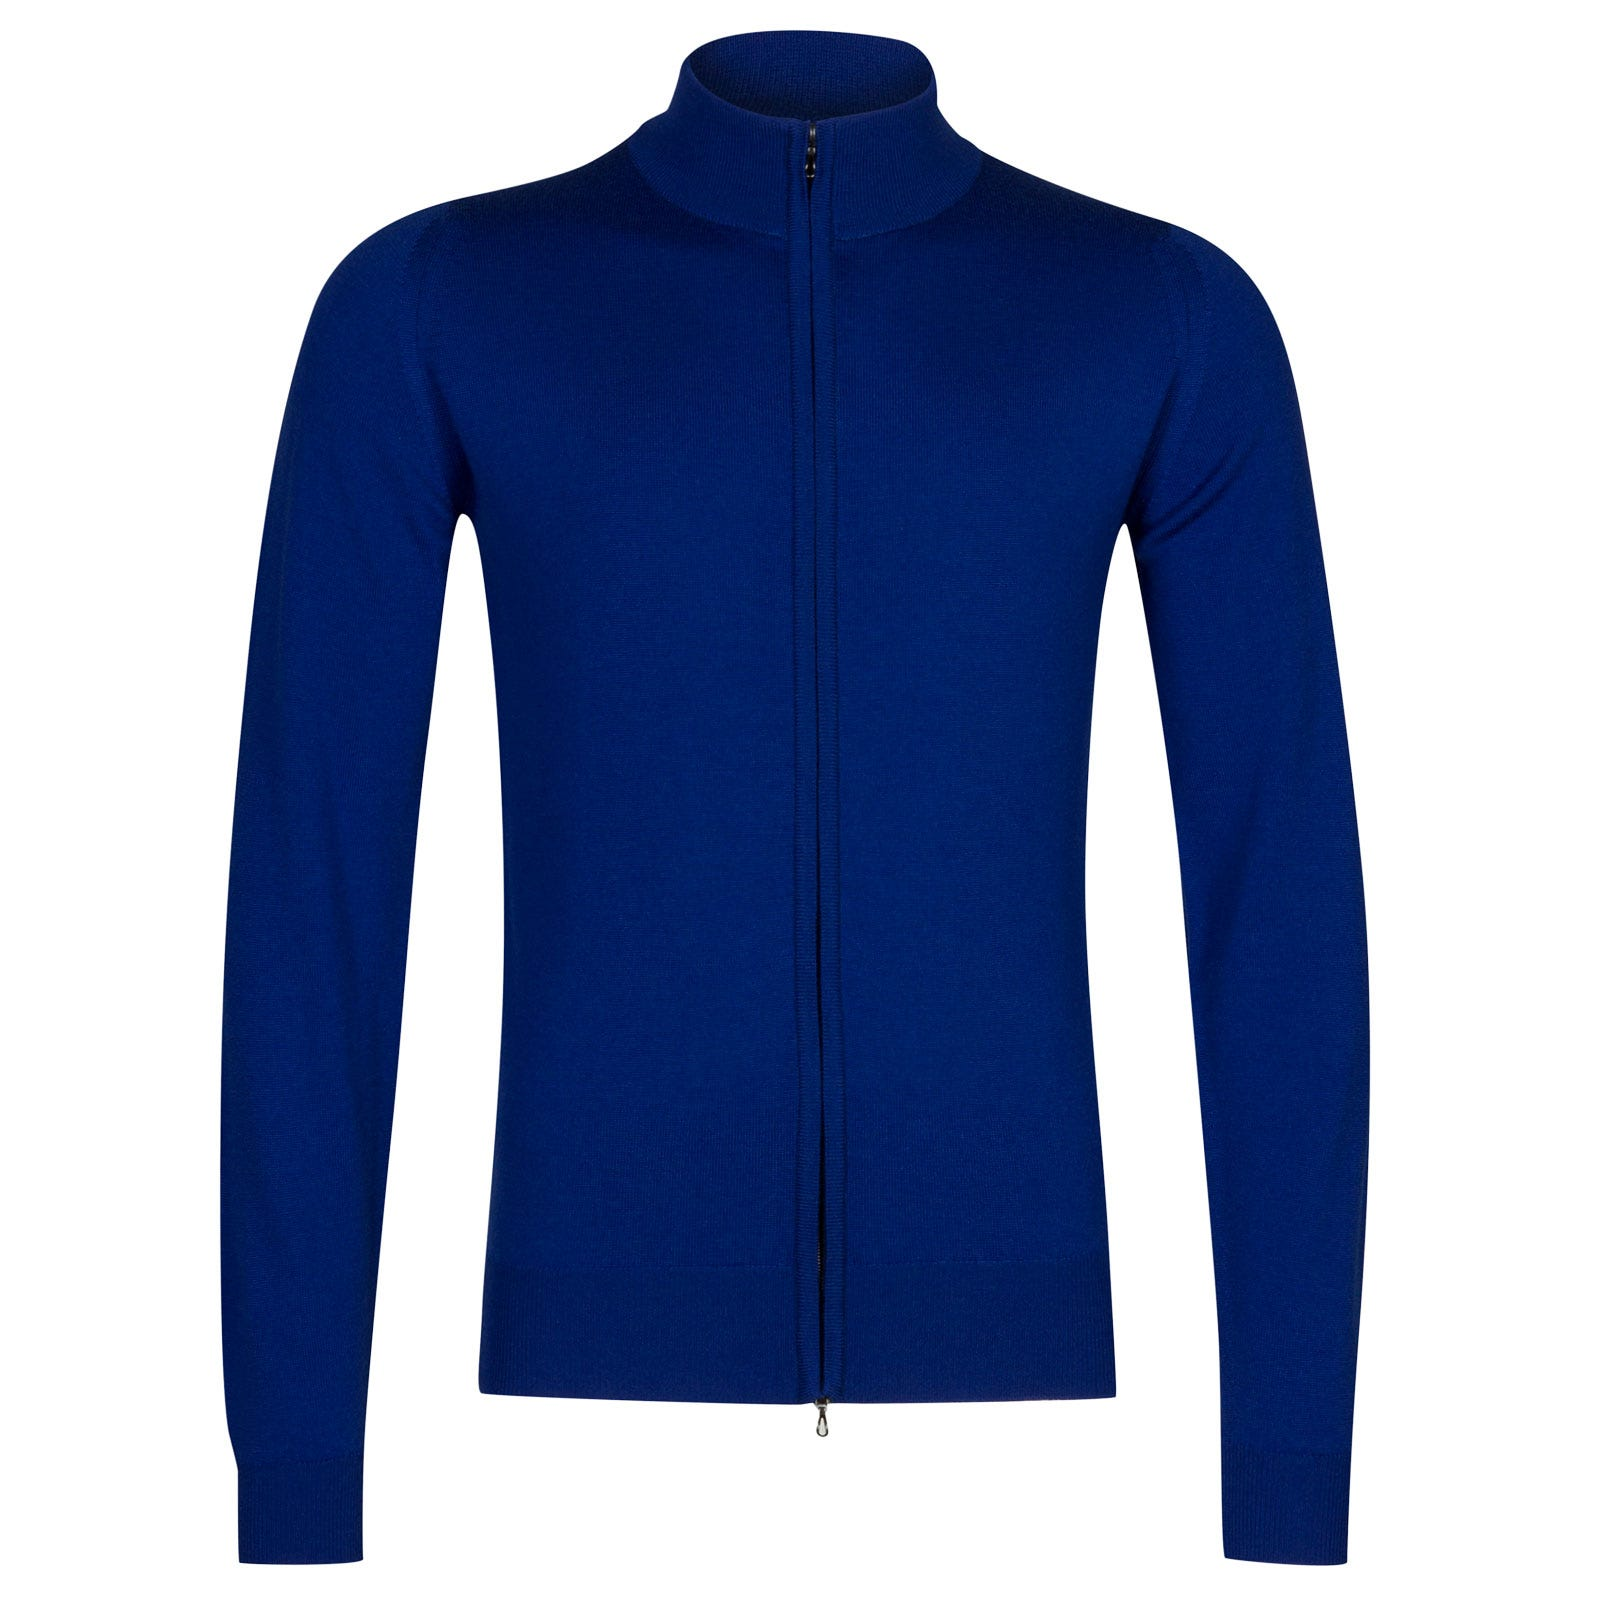 John Smedley claygate Merino Wool Jacket in Coniston Blue-M